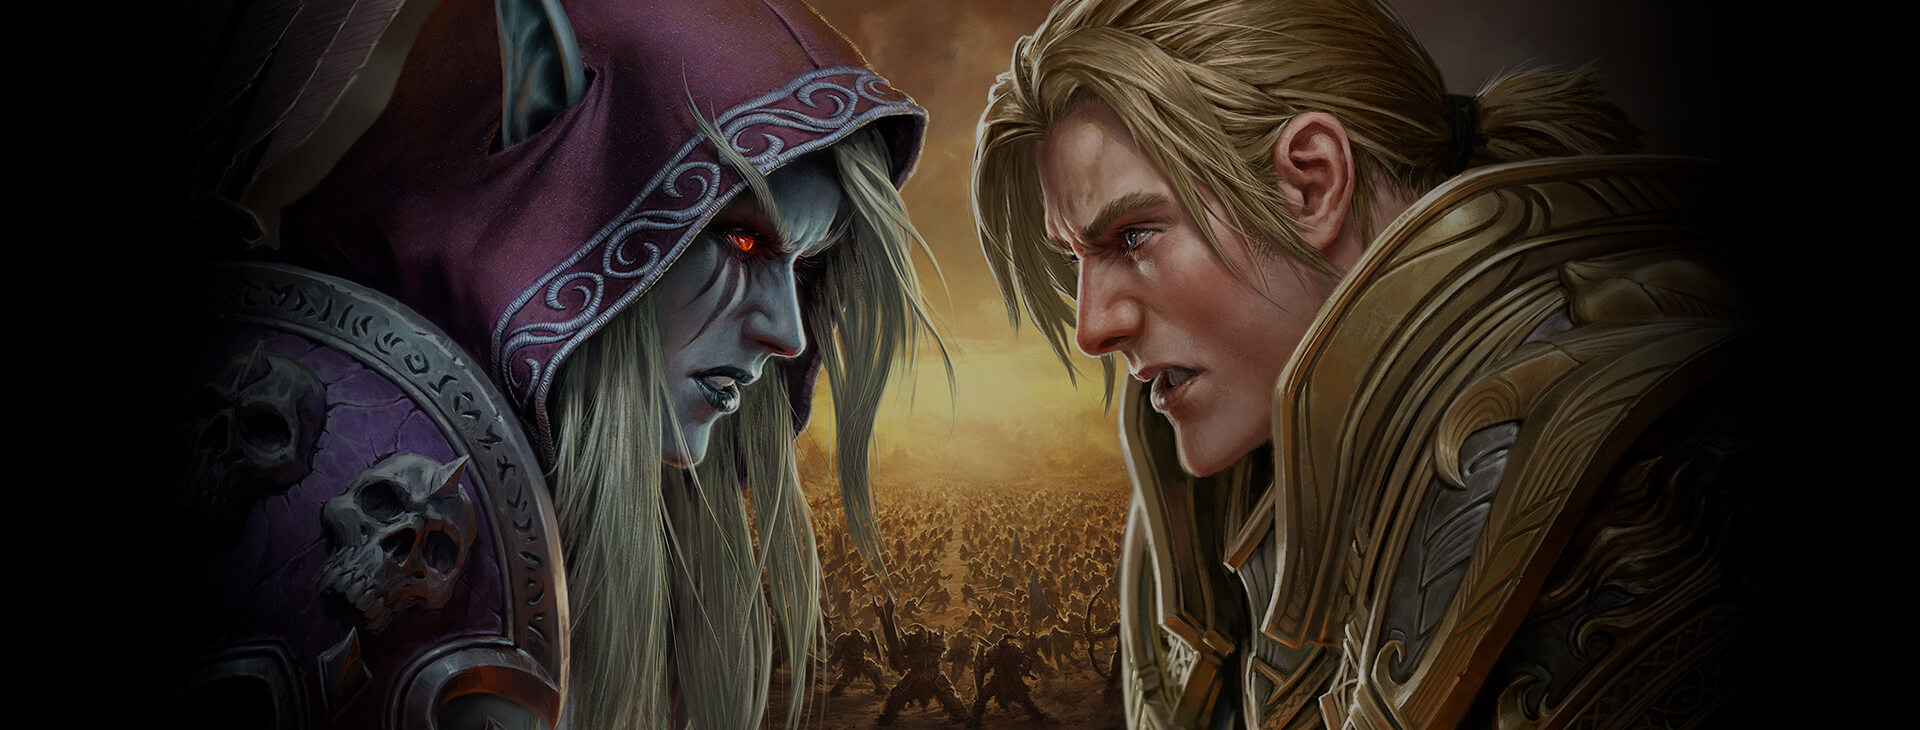 WoW : Battle for Azeroth - Website, contest